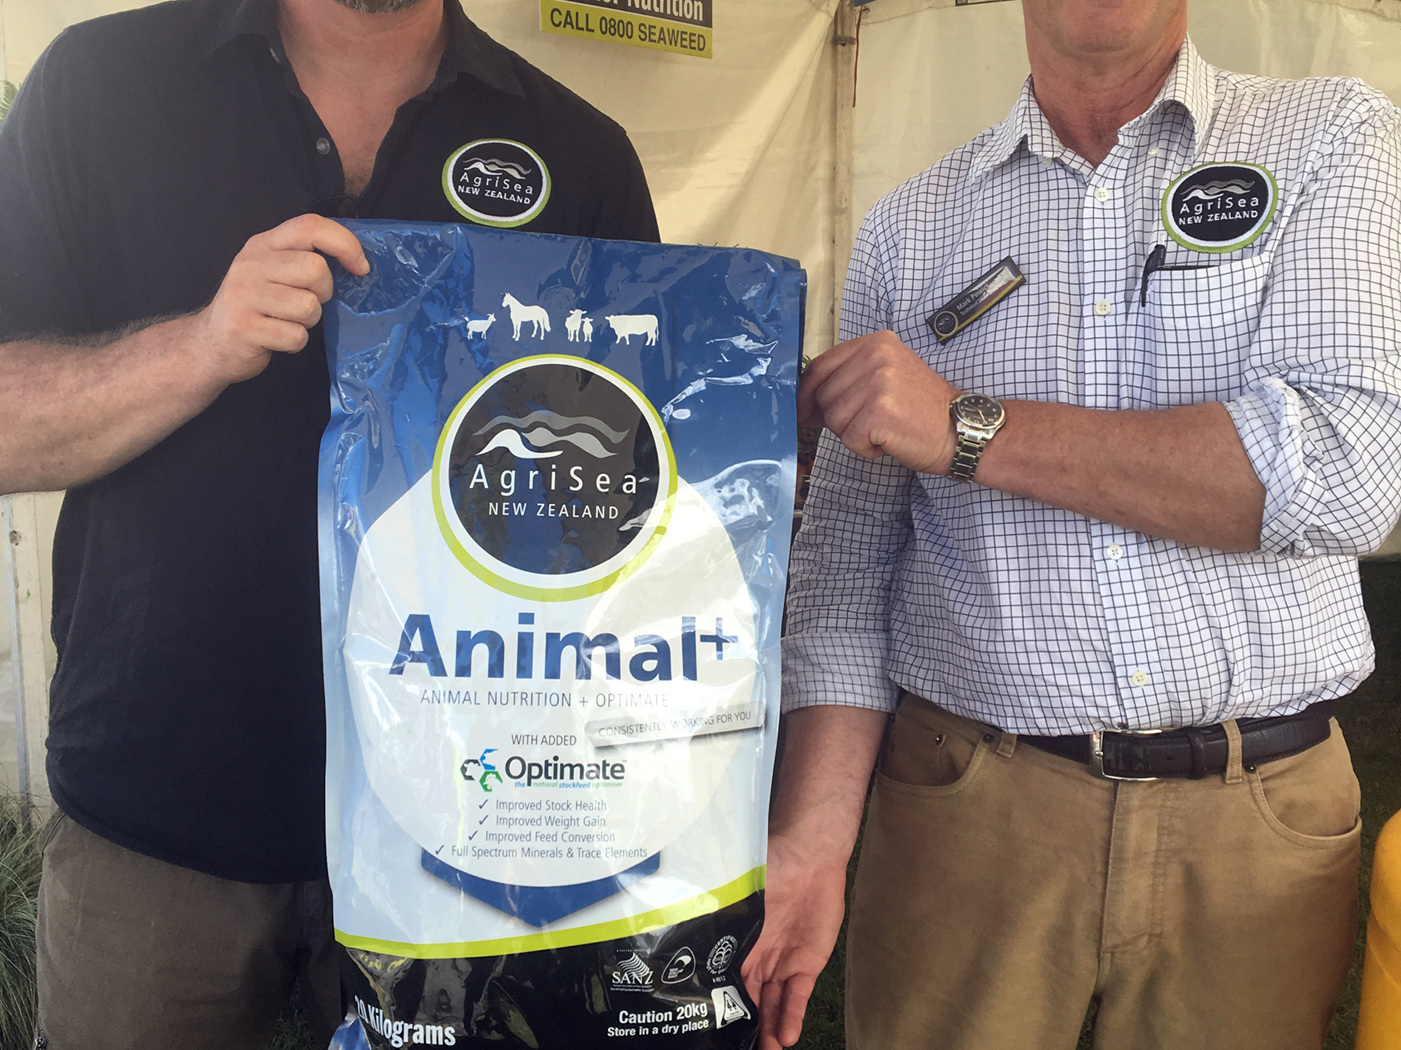 Glenn and Mark of AgriSea NZ Ltd with Animal+, Animal Nutrition and Optimate